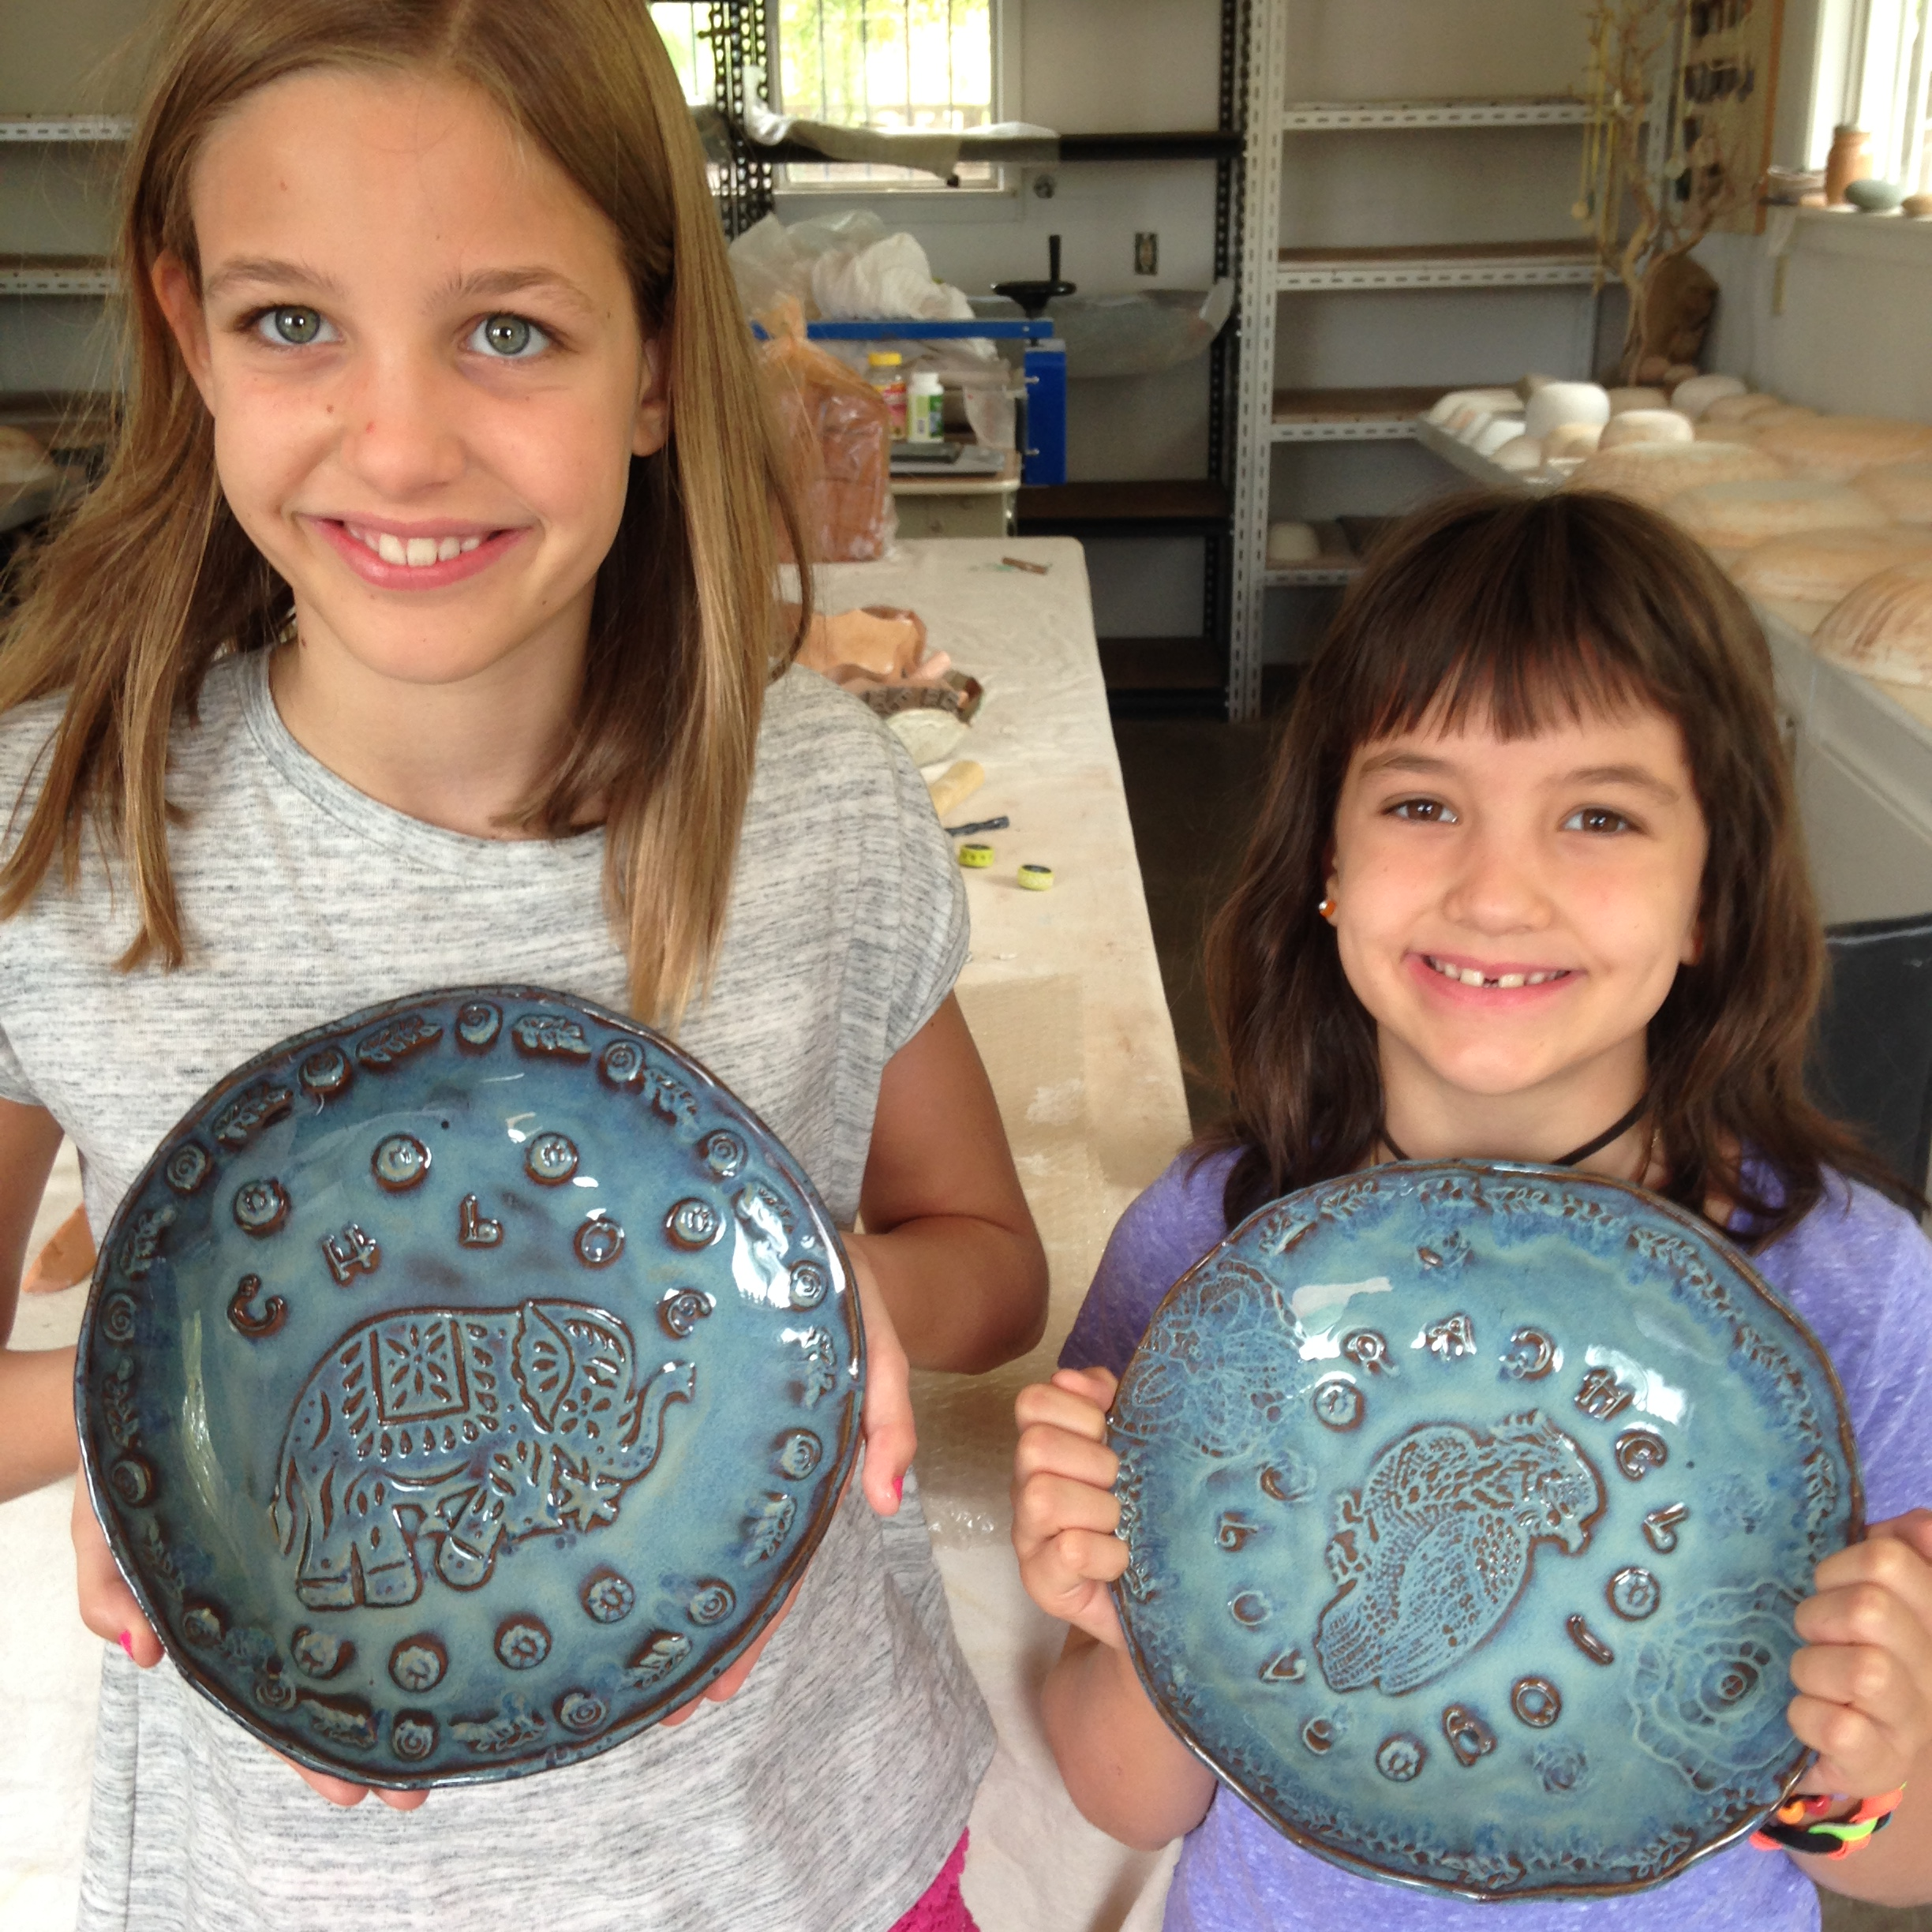 Chloe and Rachel made these amazing plates for them!